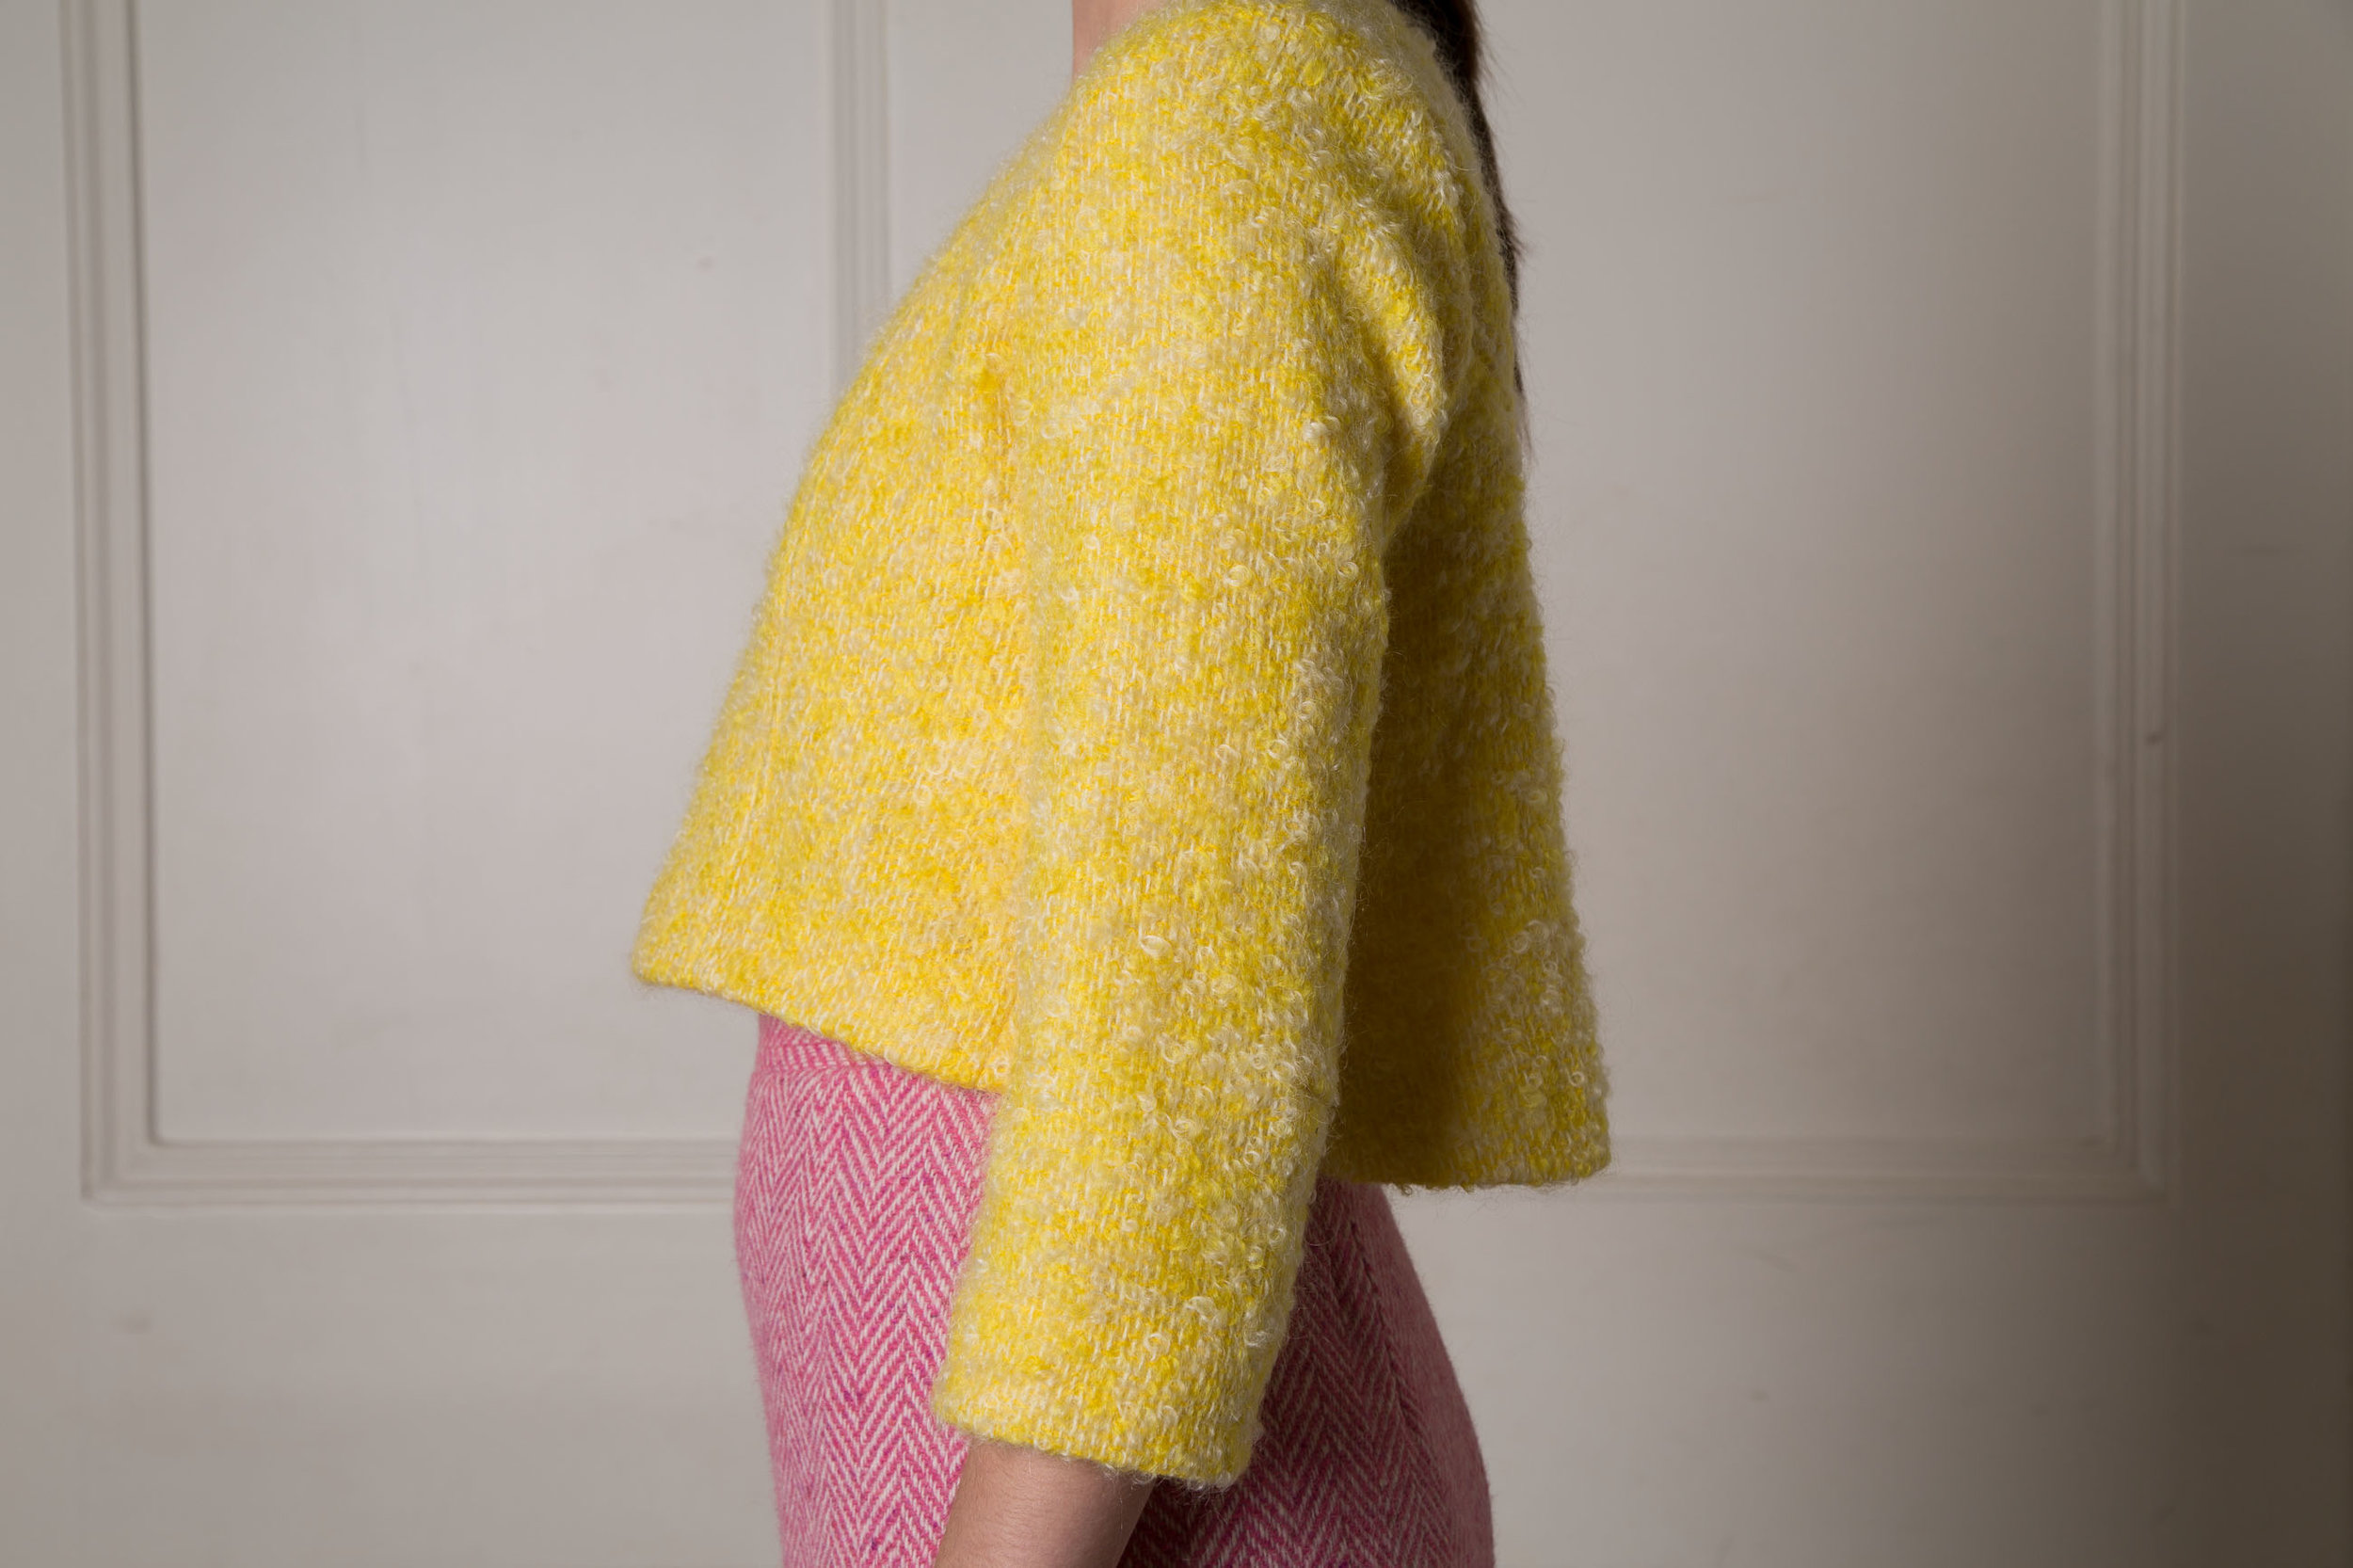 AW14: A Yellow Top with a Pink Suit for this Wool Suit